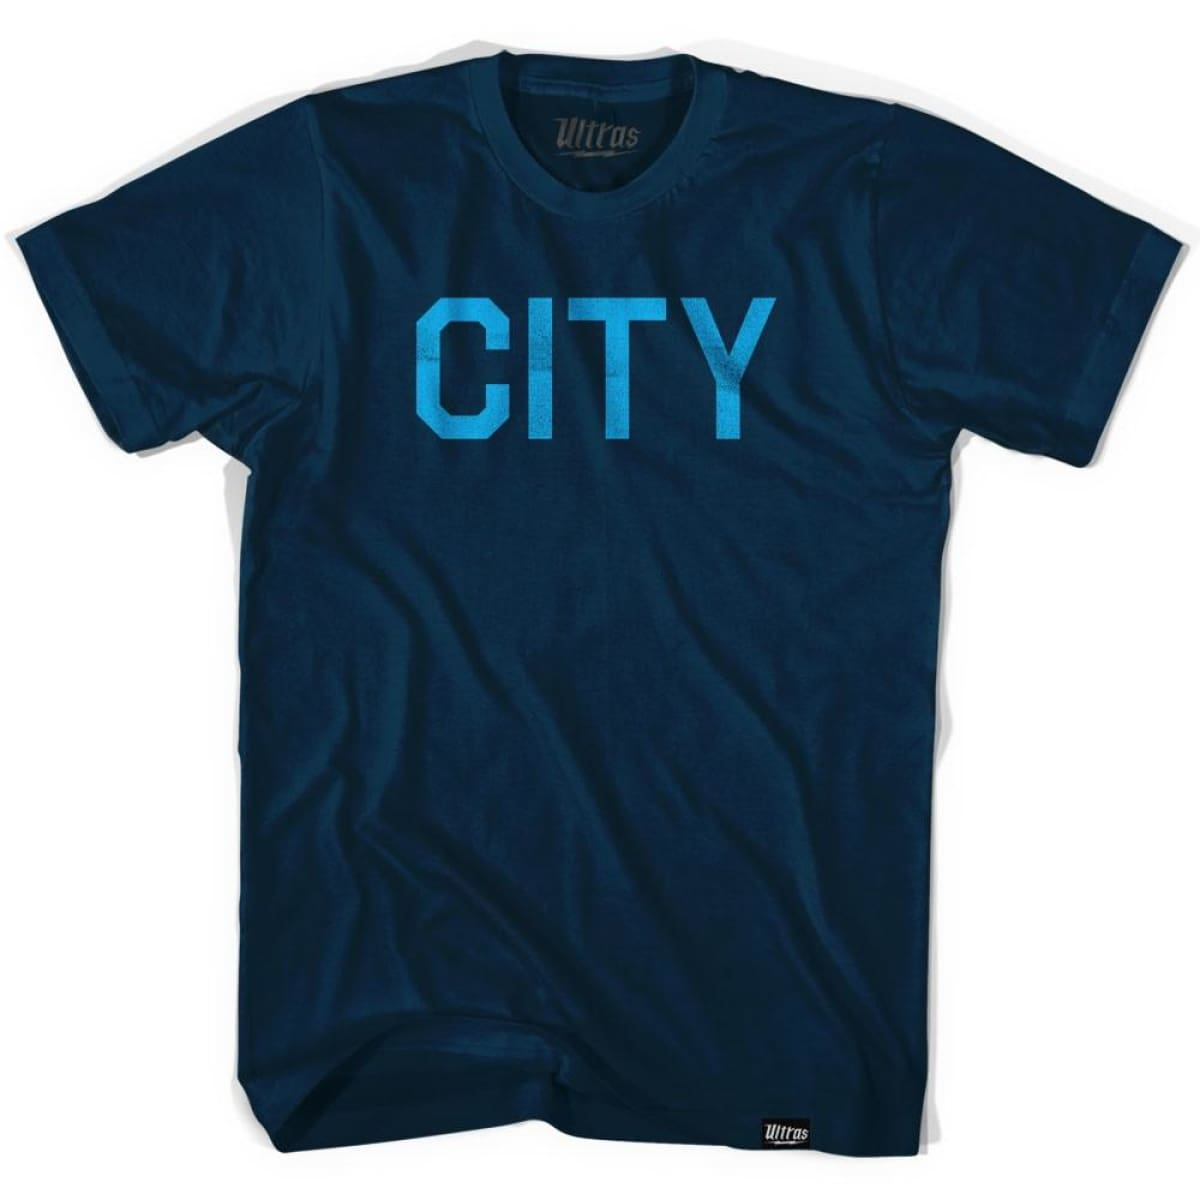 Manchester City Soccer T-shirt - Navy / Adult Small - Ultras Club Soccer T-shirt